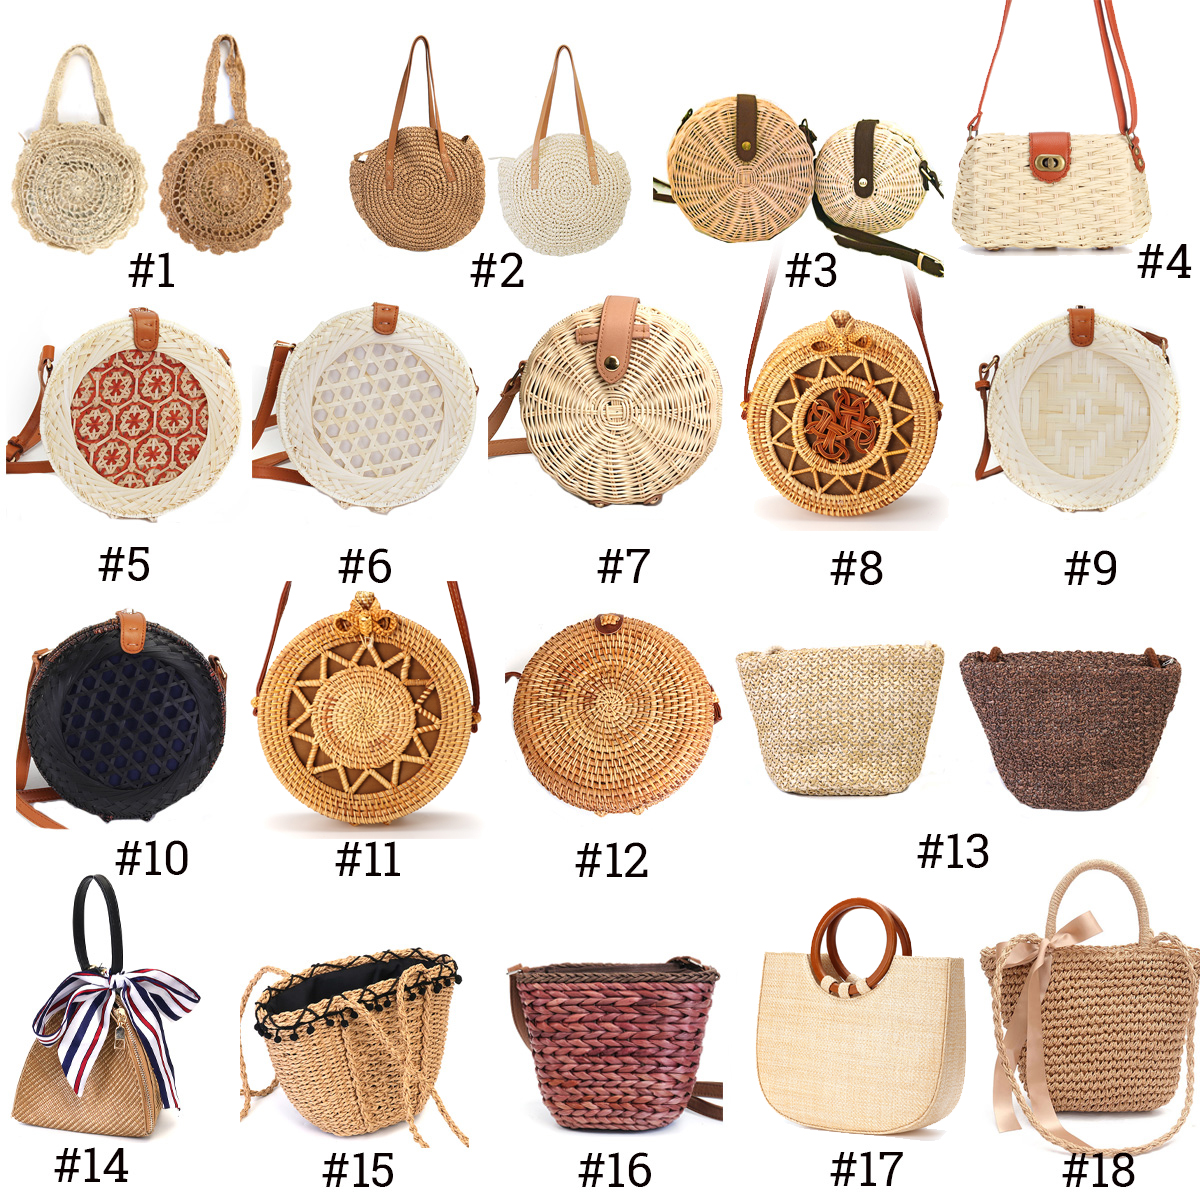 2019 Women Vintage Beach Straw Bag Ladies Handmade Woven Rattan Messenger Handbag Summer Bali Bohemian Crossbody Shoulder Bag